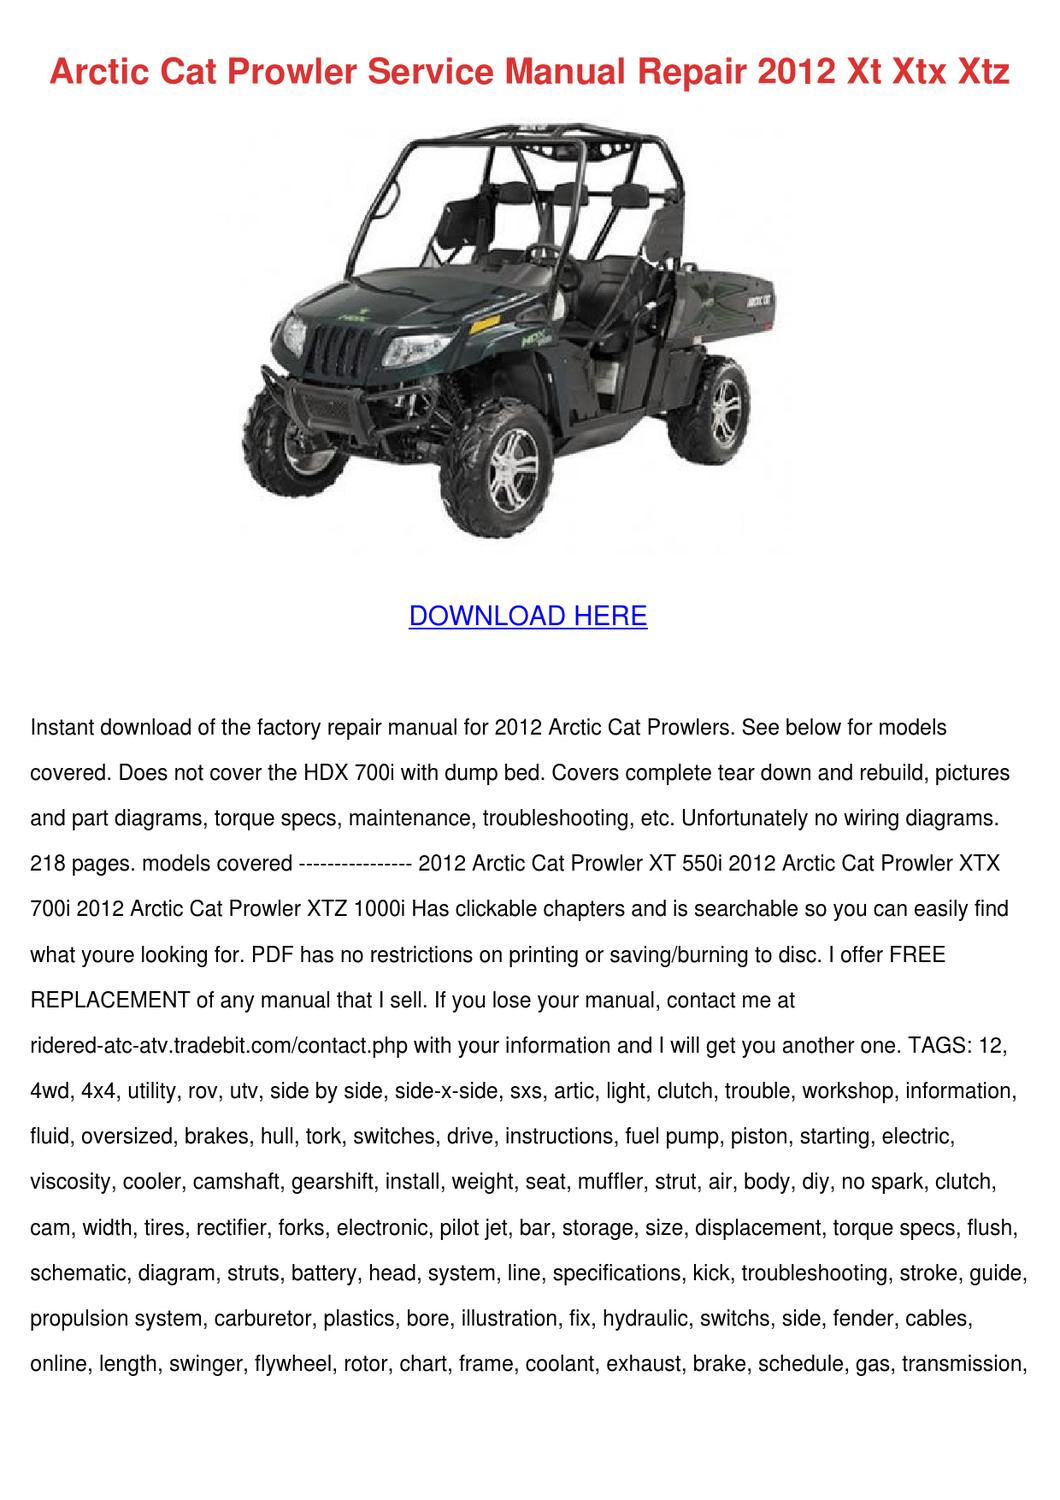 2012 Arctic Cat Prowler Wiring Diagram Electrical Diagrams 1990 Service Manual Repair By Princess Smoley Issuu Club Car